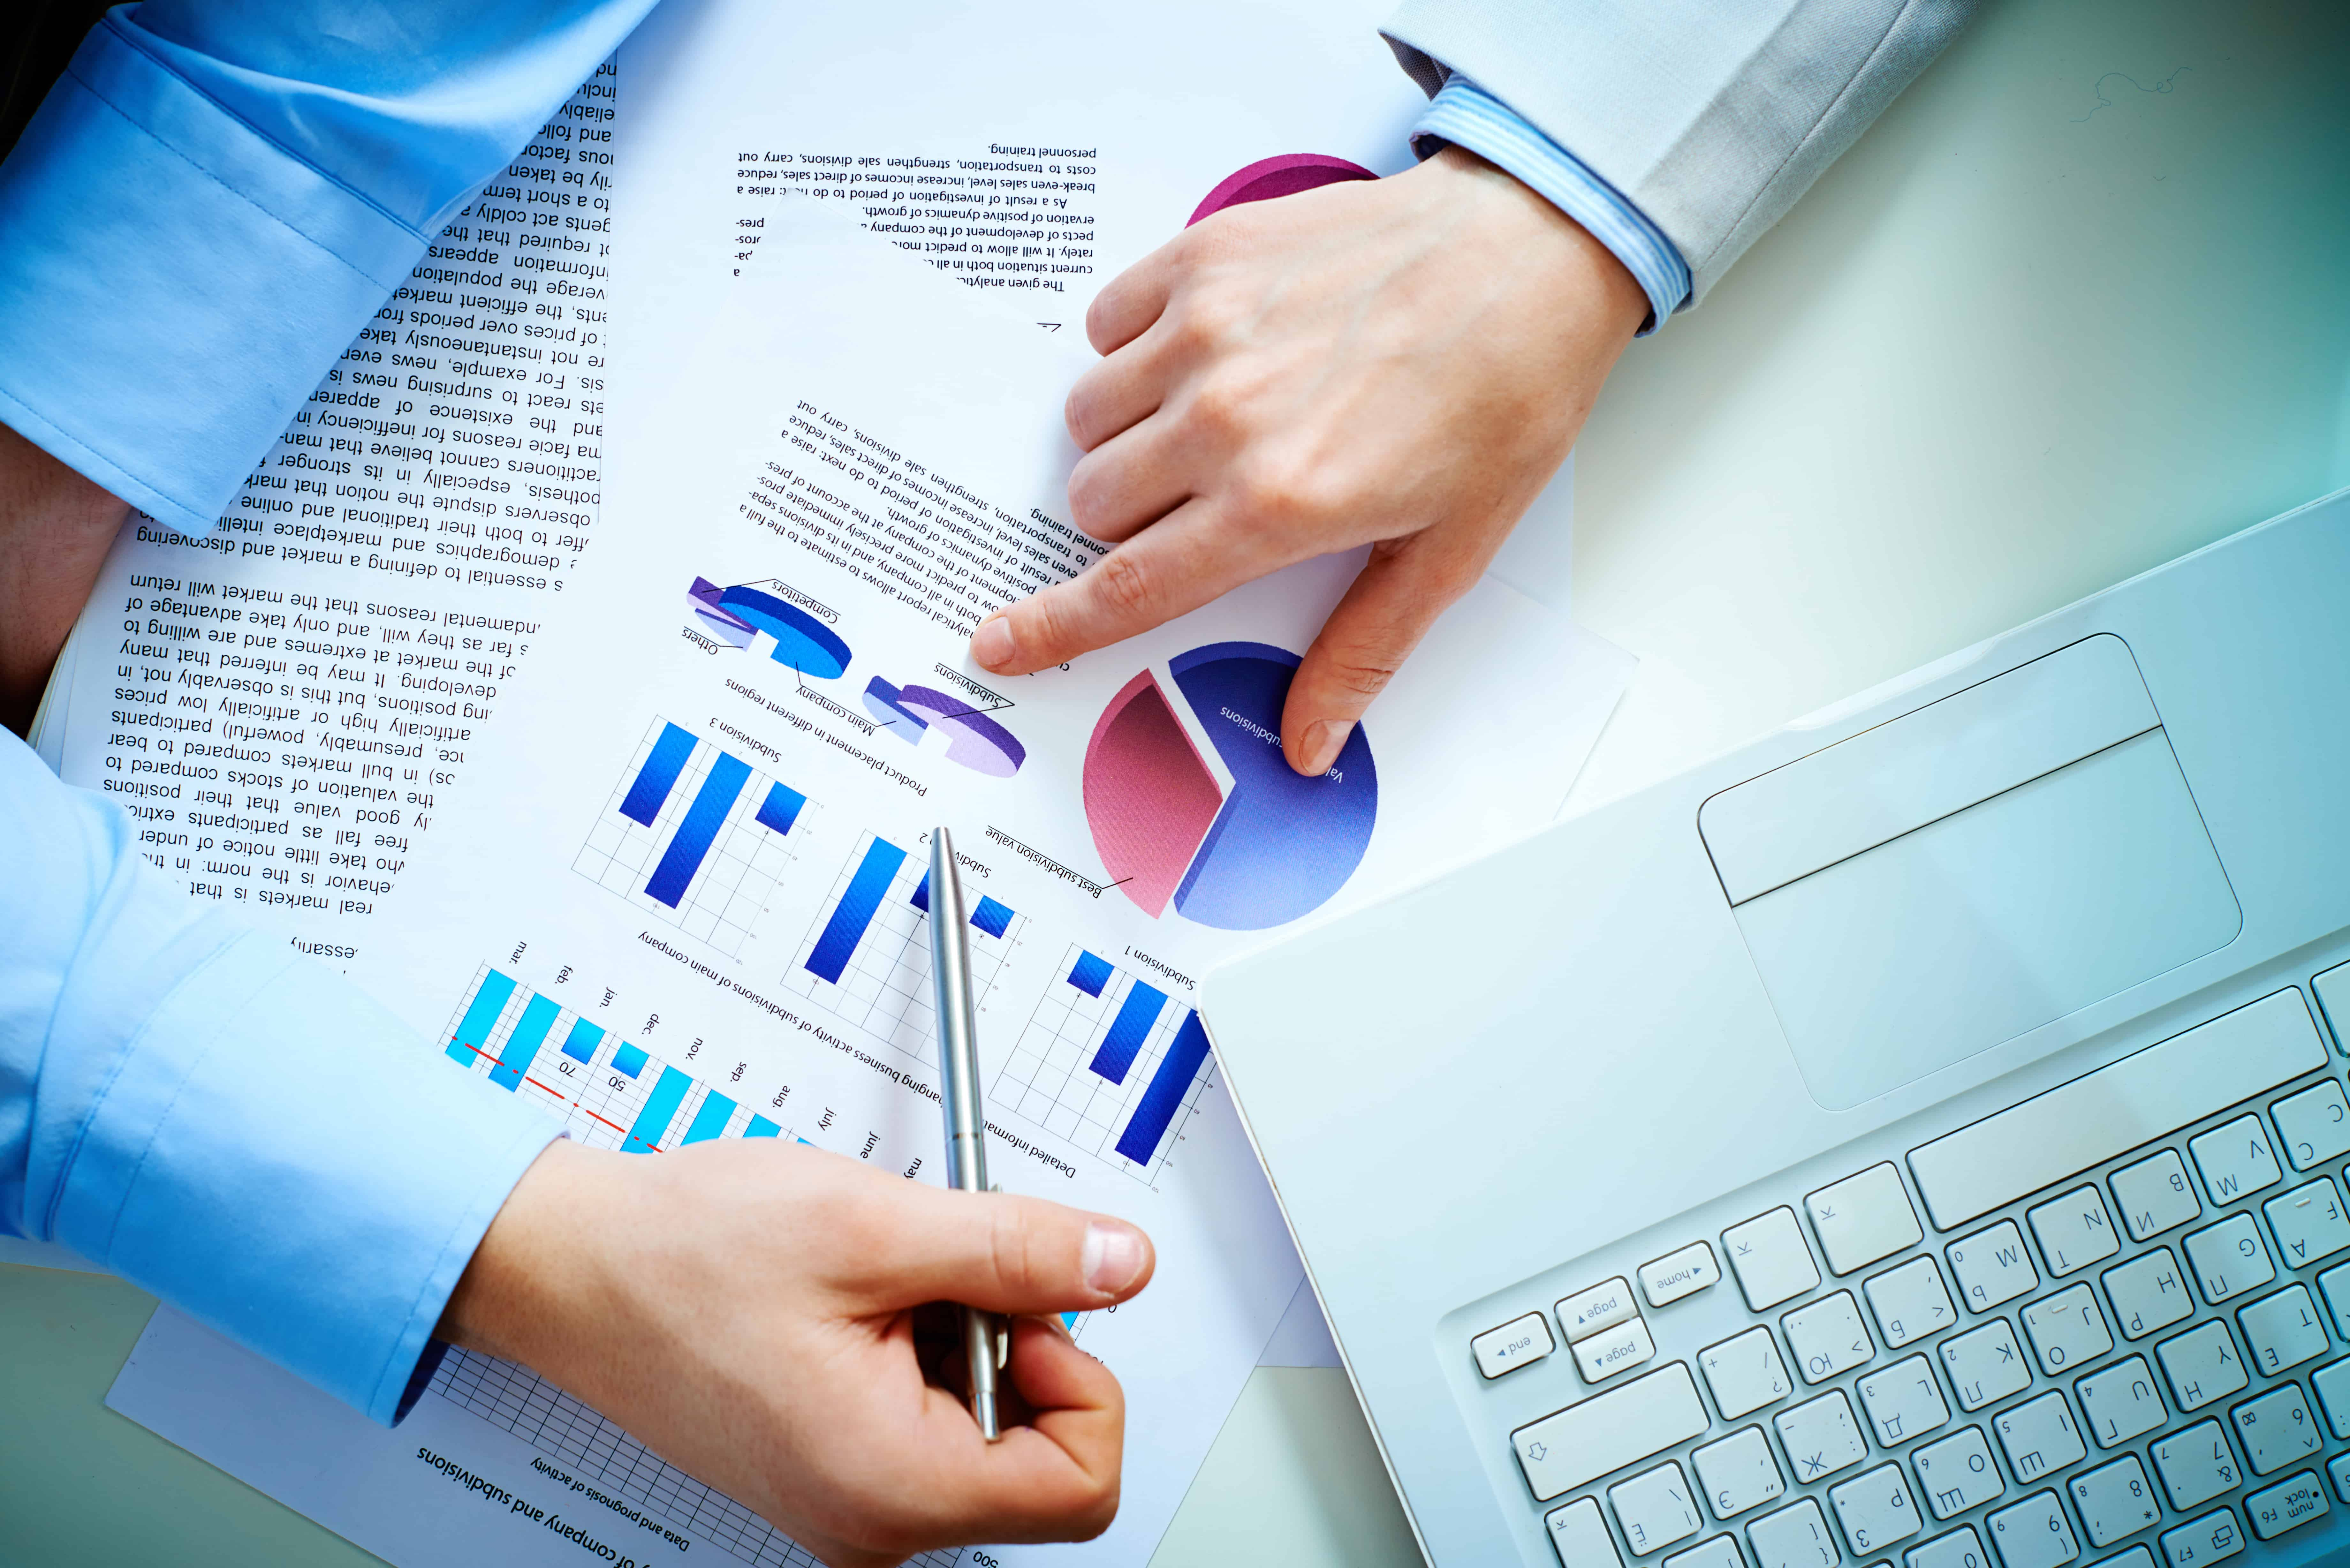 Pricing Analytics | Pricing Analytics Models and Tools